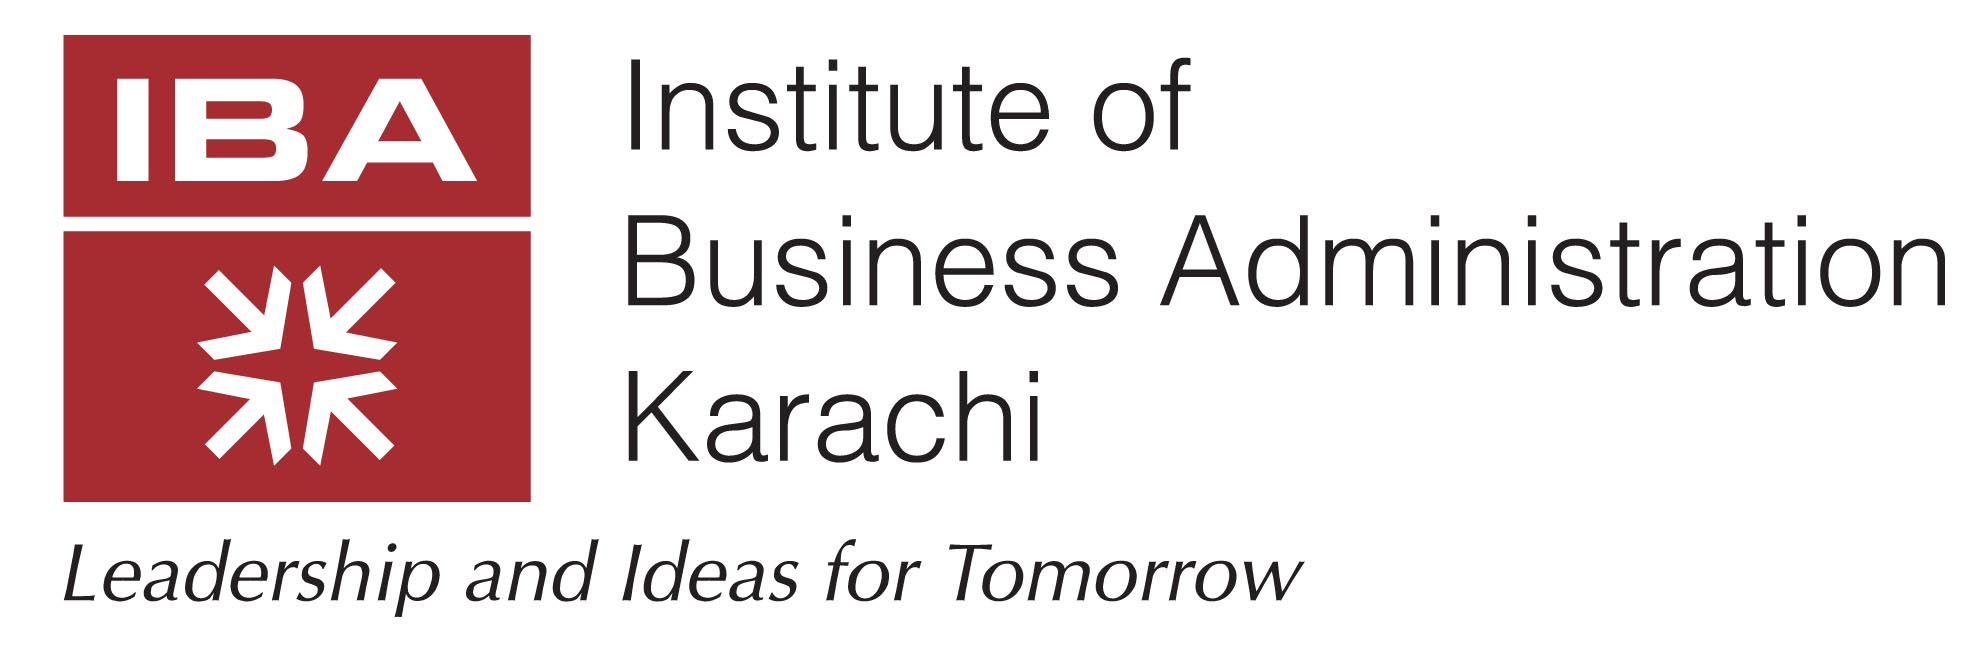 IBA Karachi Admission 2017 BBA, MBA Form, Requirement, Criteria